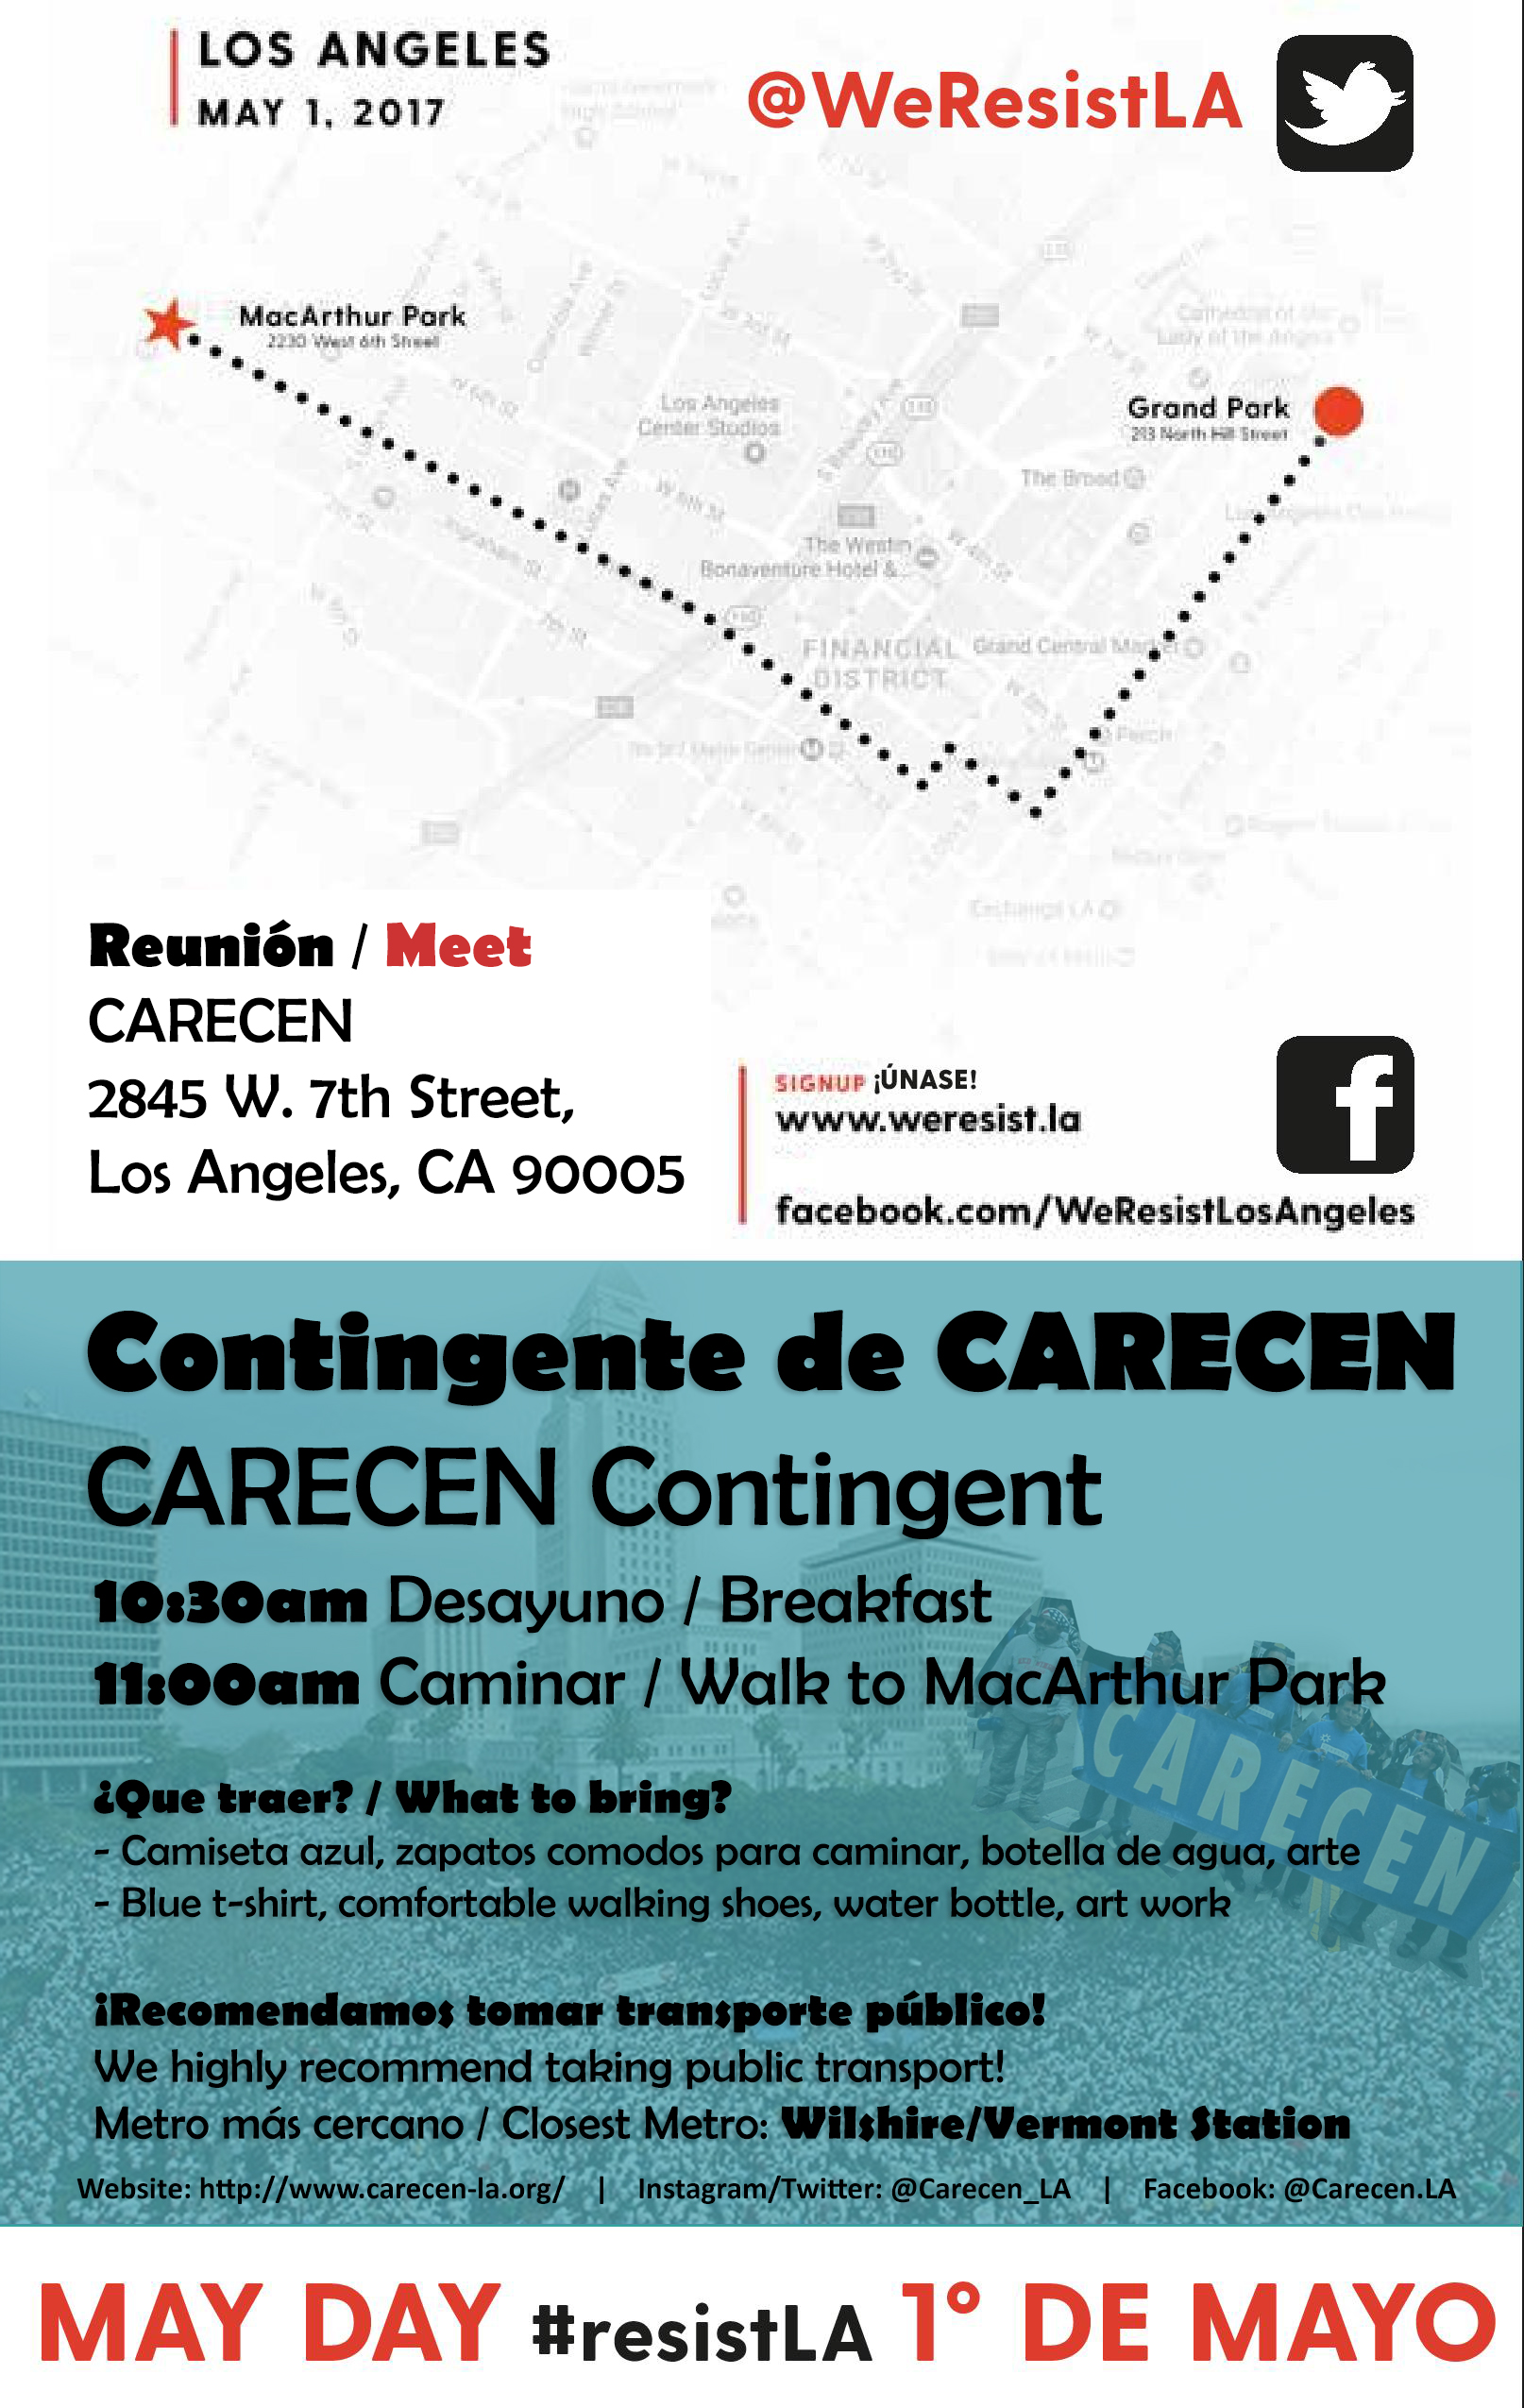 CARECEN_May_Day_Contingent_Flyer3.jpg